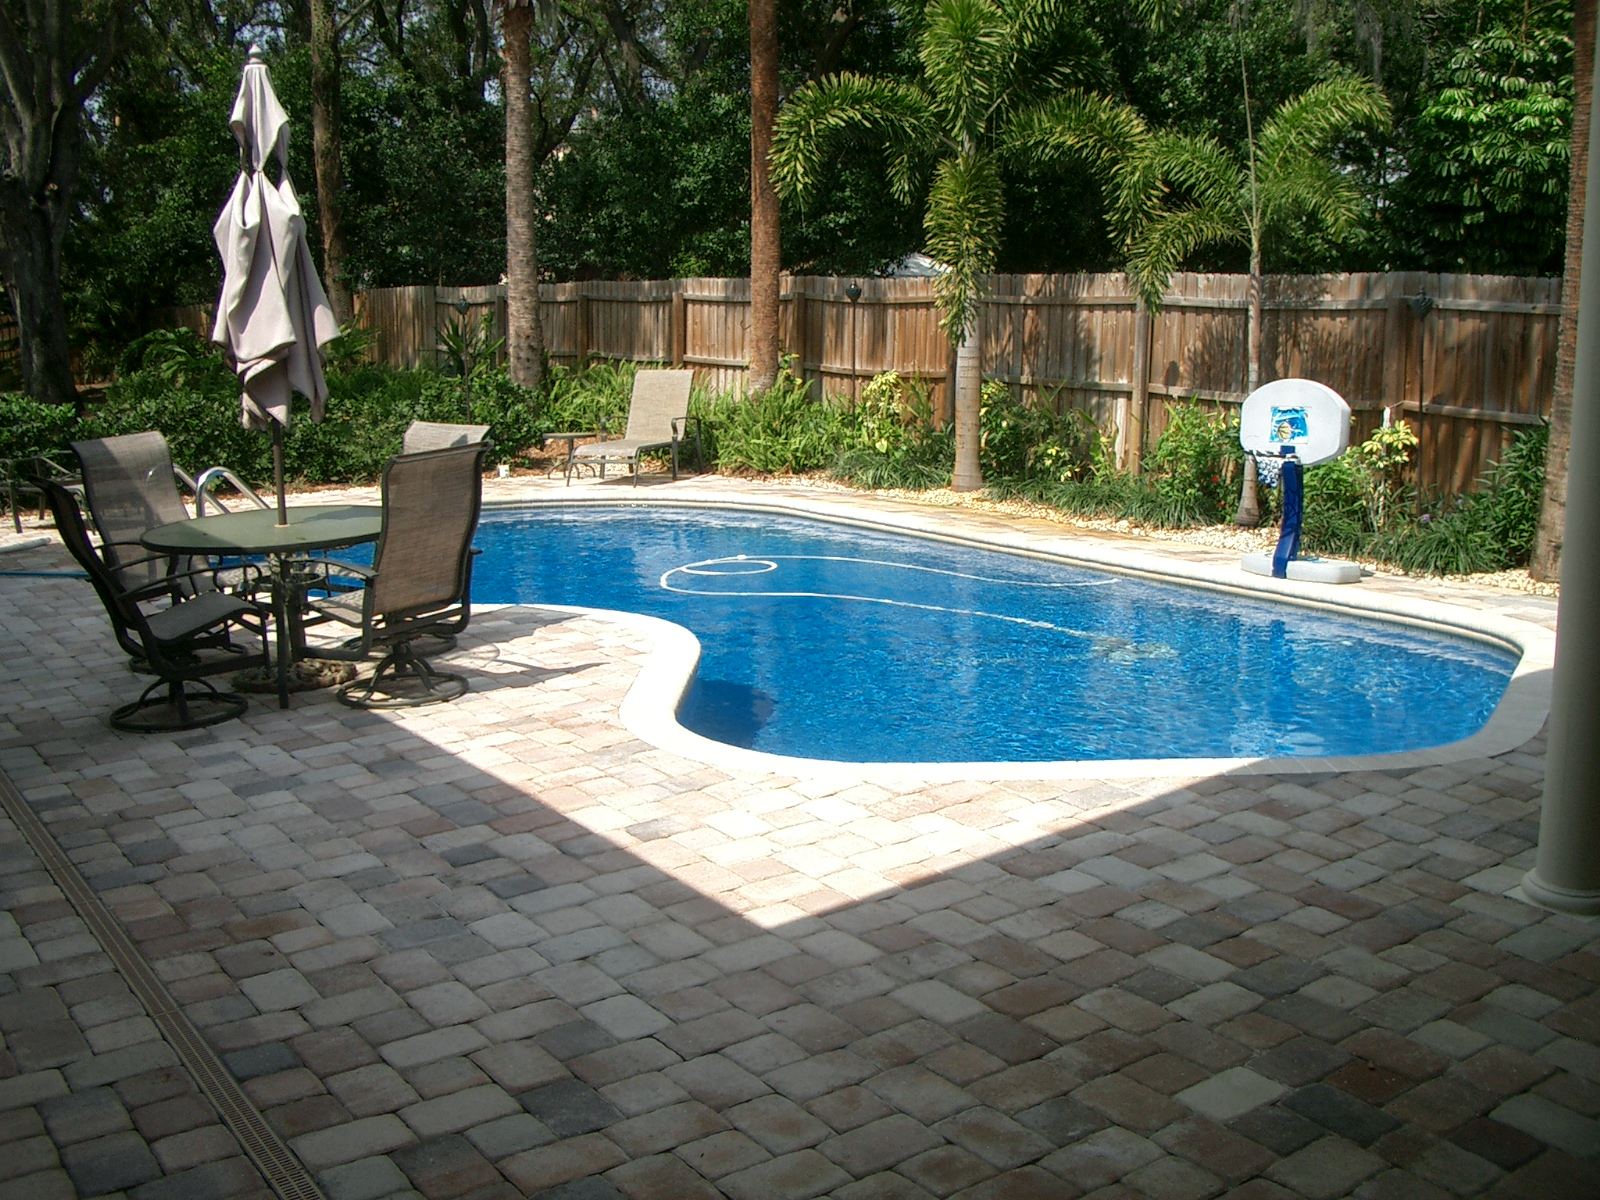 Backyard Pool Design Ideas in ground swimming pool designs implausible best 25 inground pool designs ideas on pinterest 6 Backyard Landscaping Ideas Swimming Pool Design